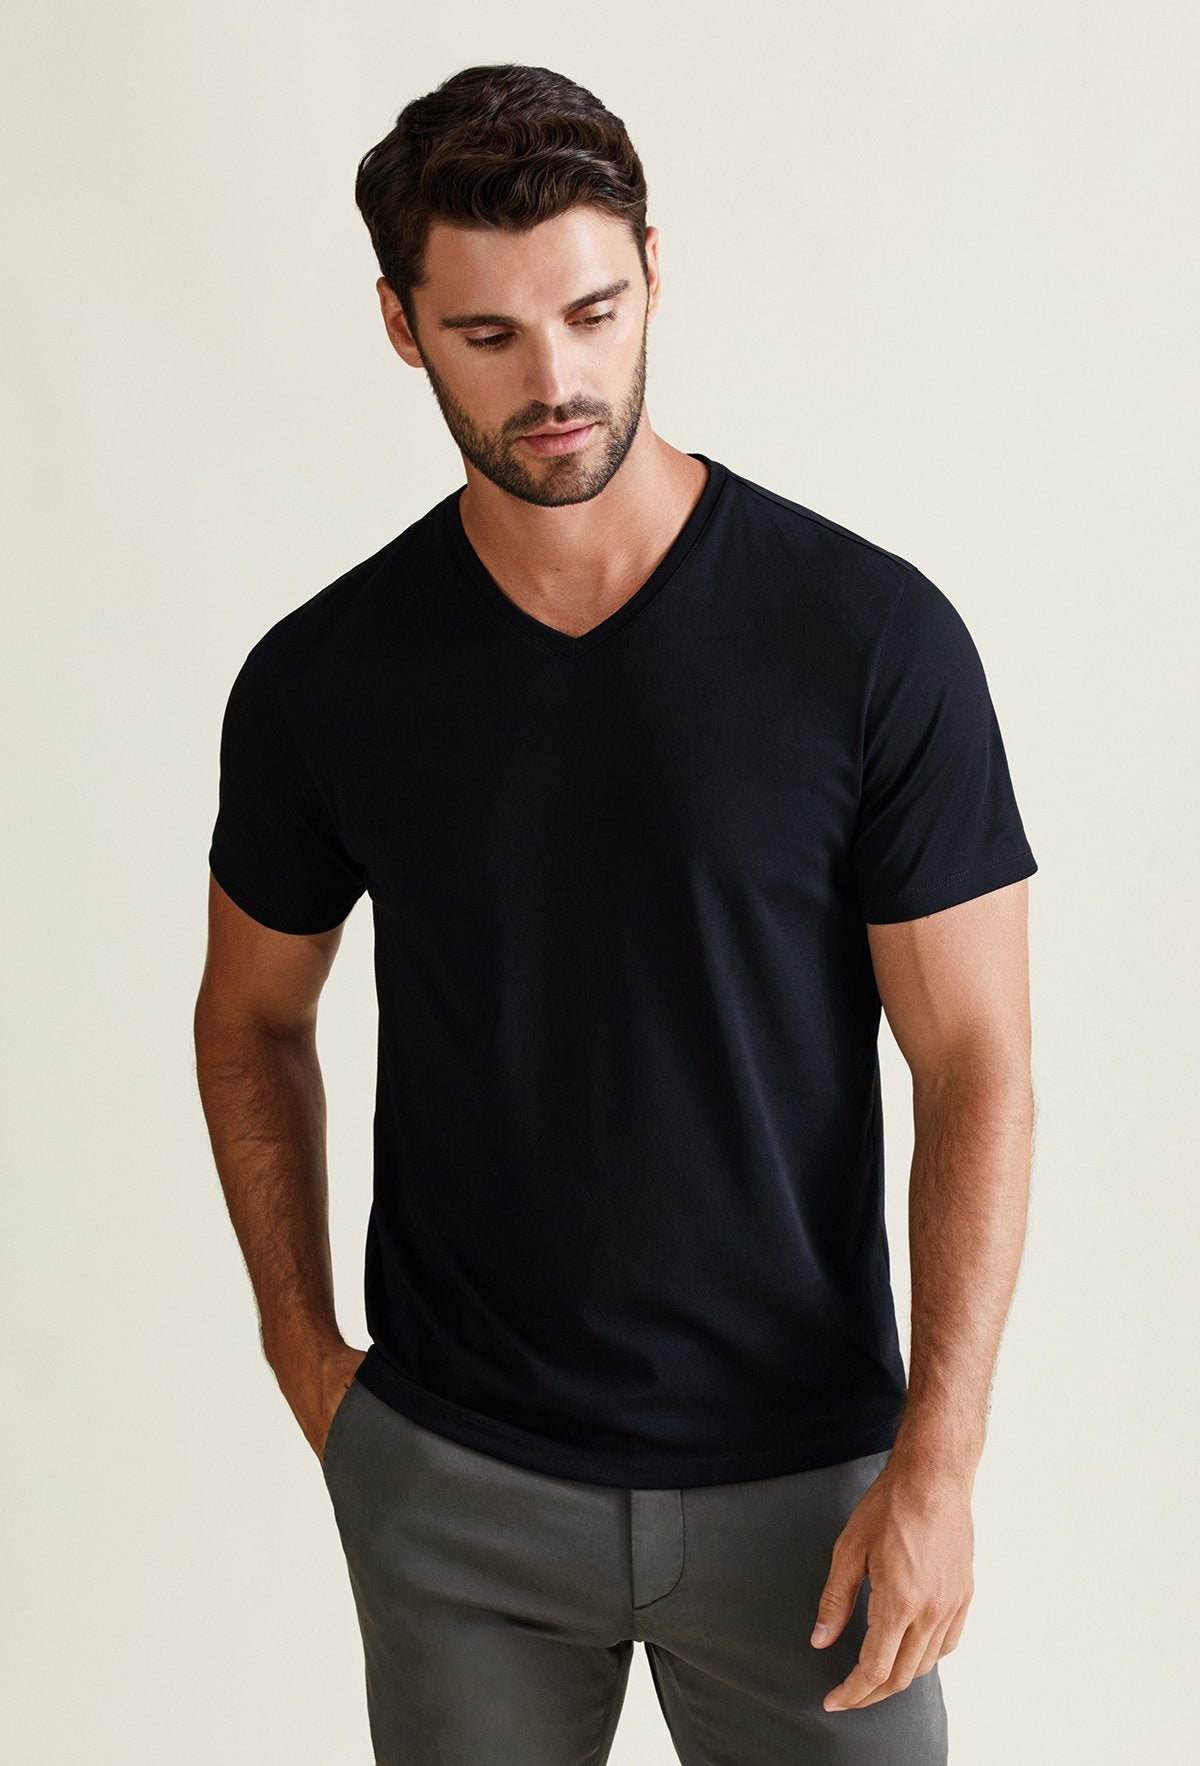 Men's Onyx Pima Cotton V-Neck T-Shirt - Peruvian Cotton Blend